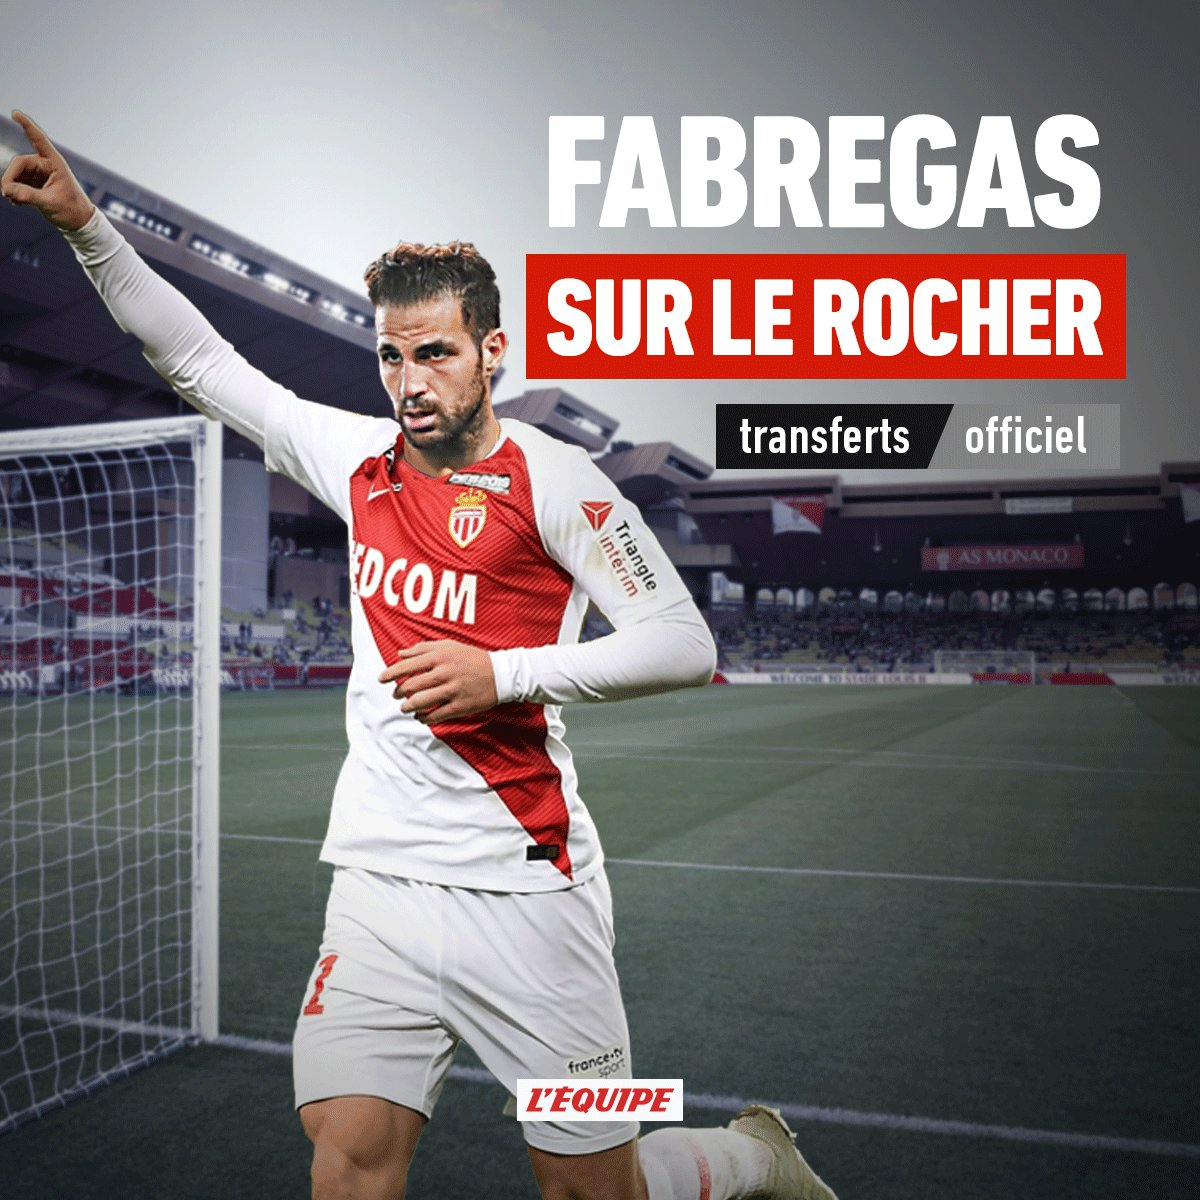 L'ÉQUIPE's photo on Annonce Fabregas